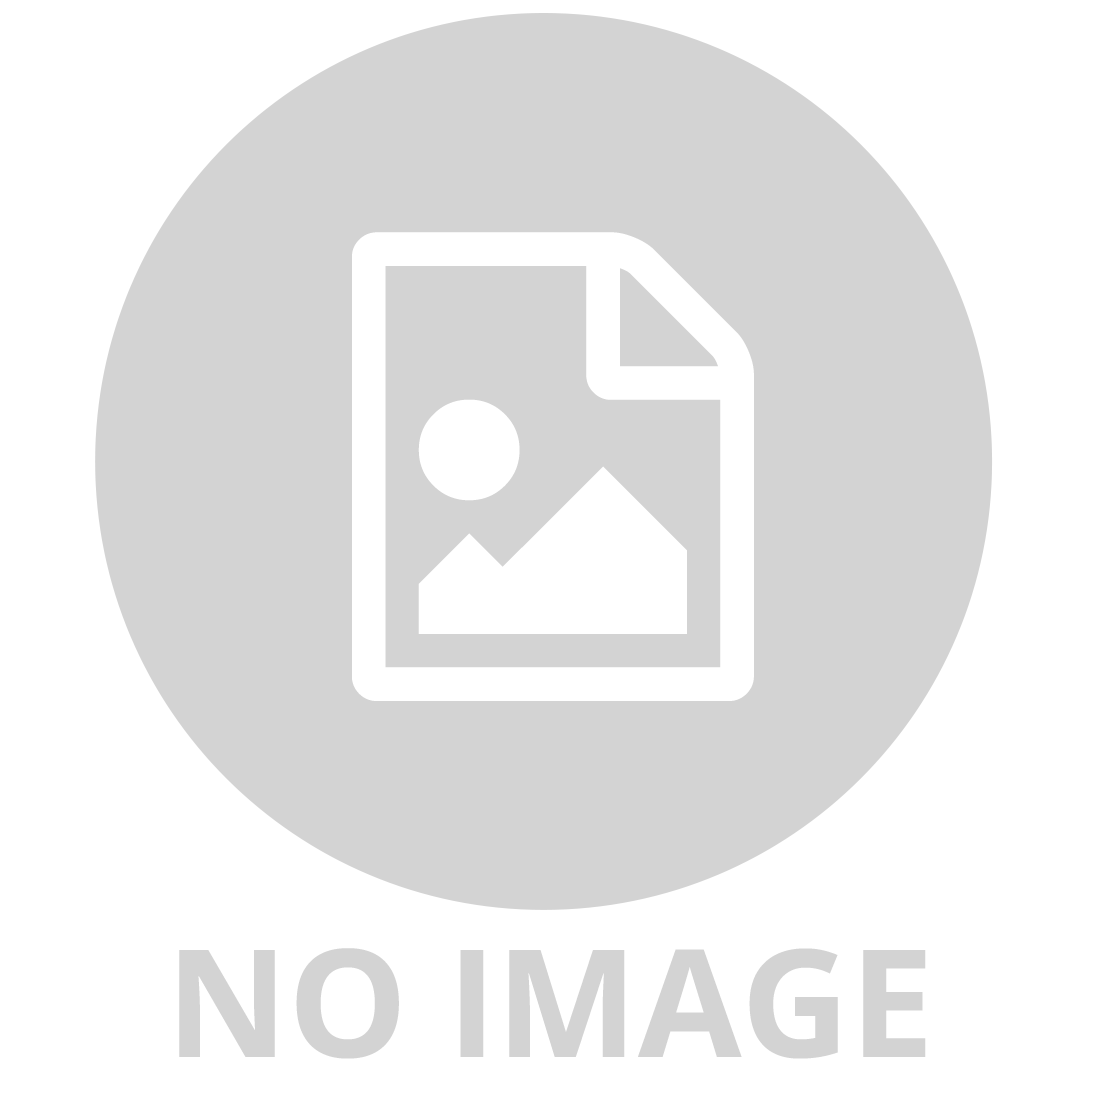 D550+ LED Curve White 4K 36deg 7.5w